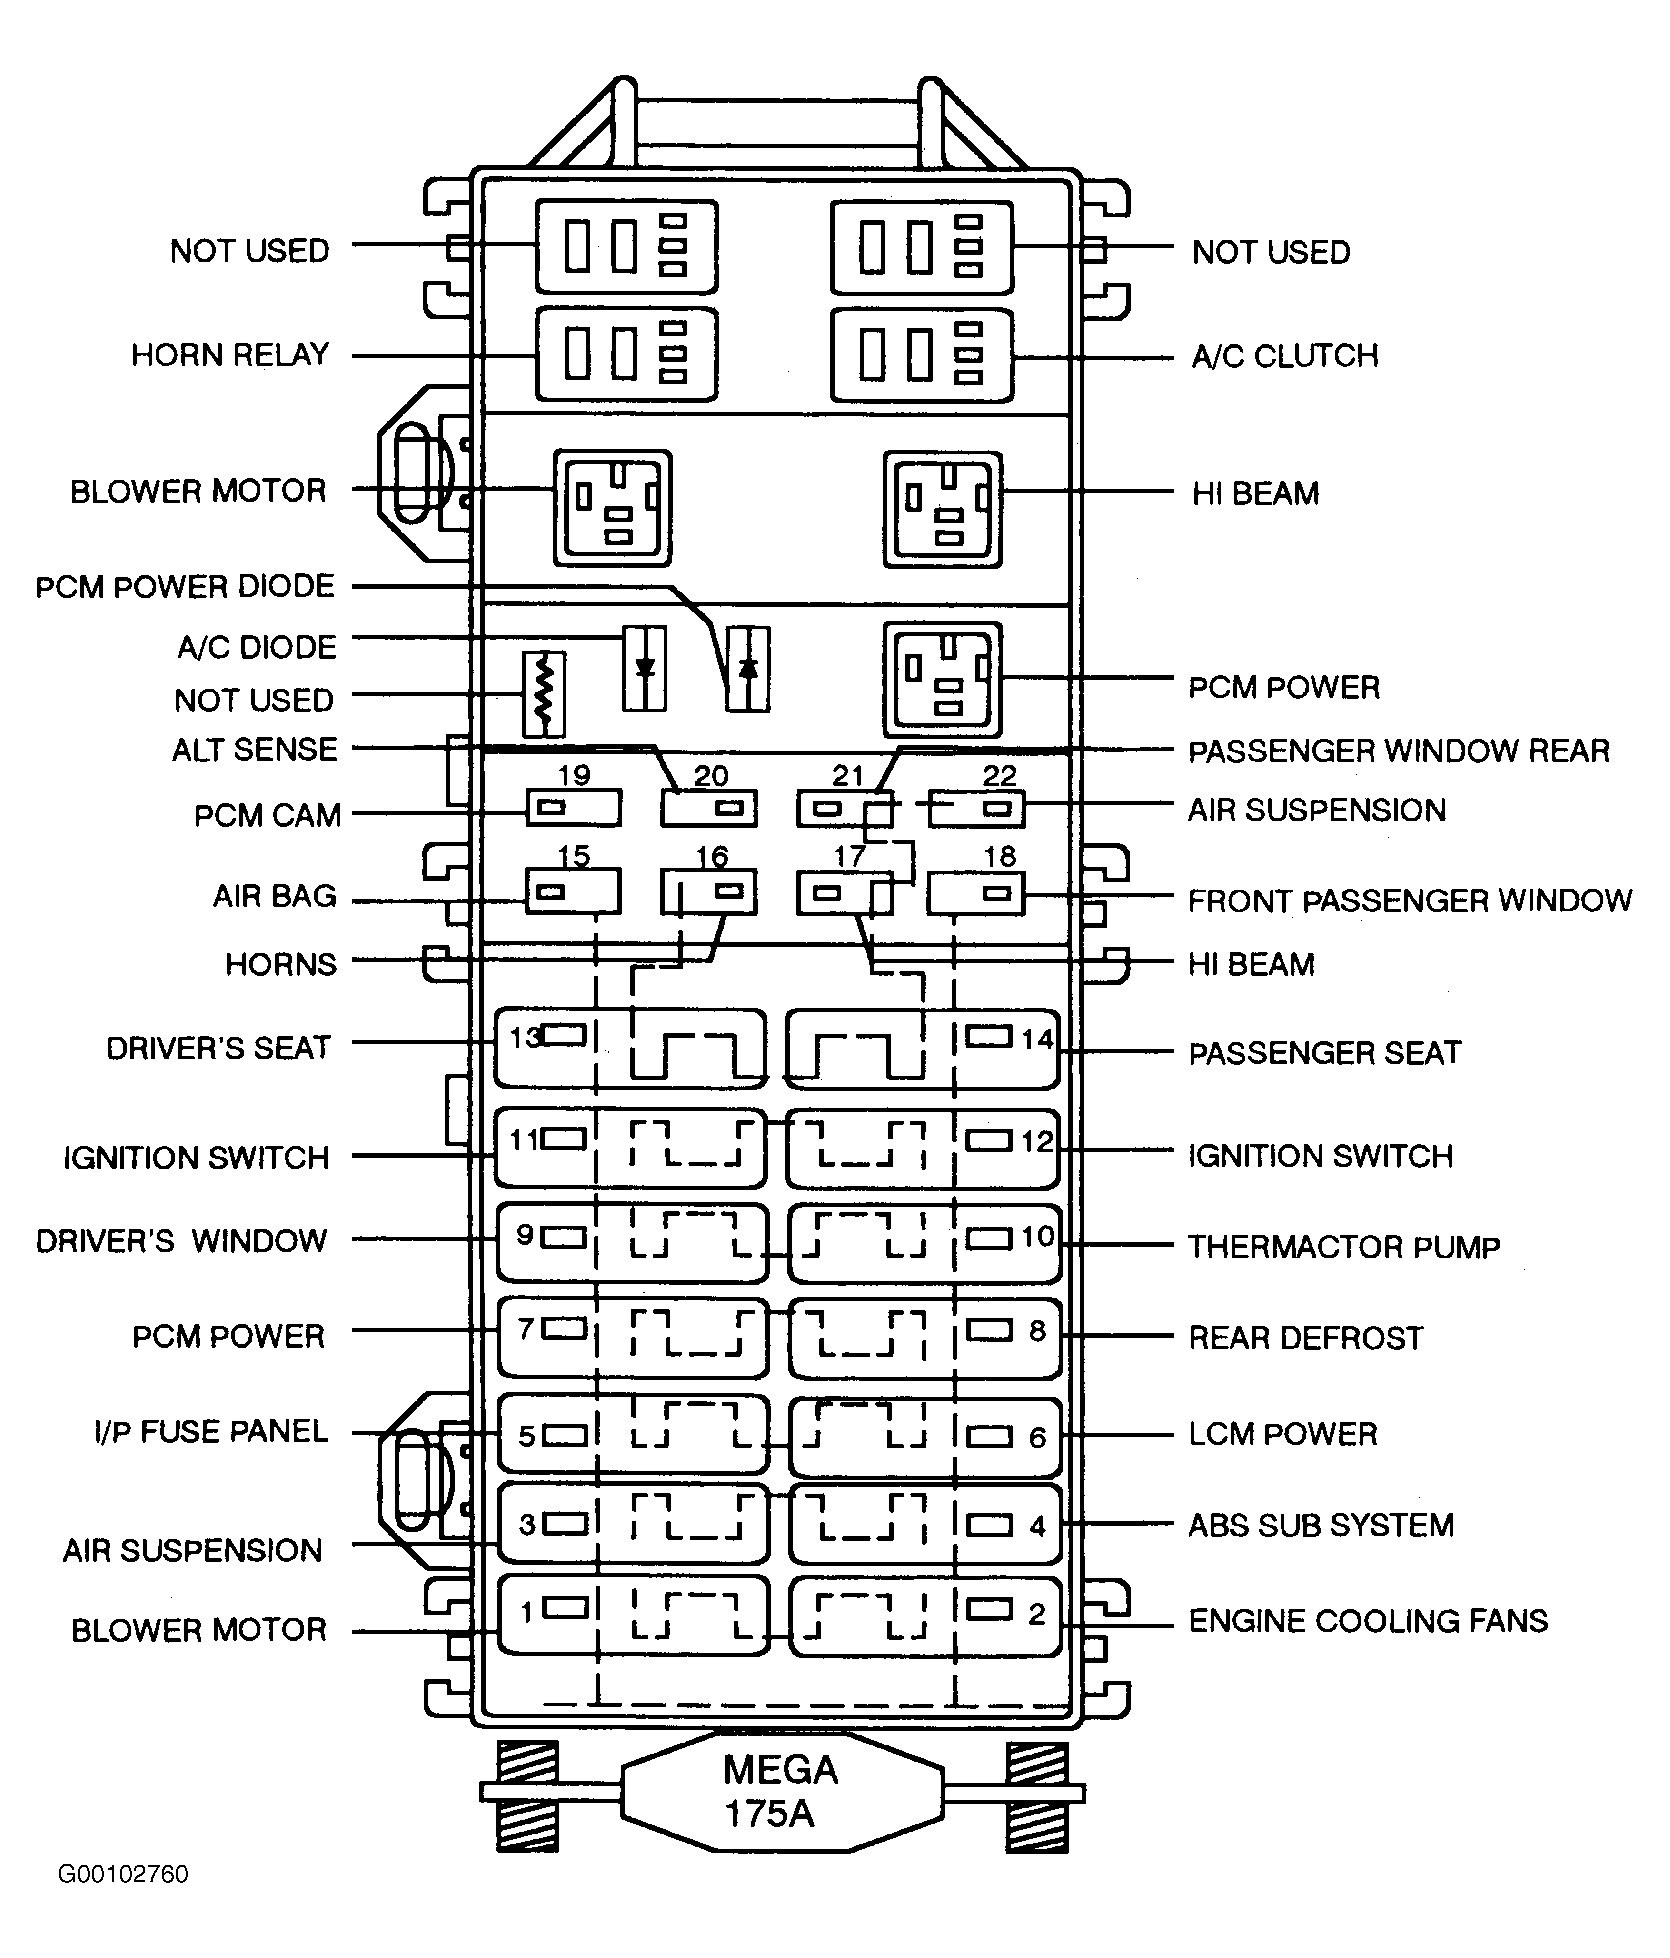 1997 lincoln town car wiring diagram marlin glenfield model 60 parts 1990 fuse box  for free